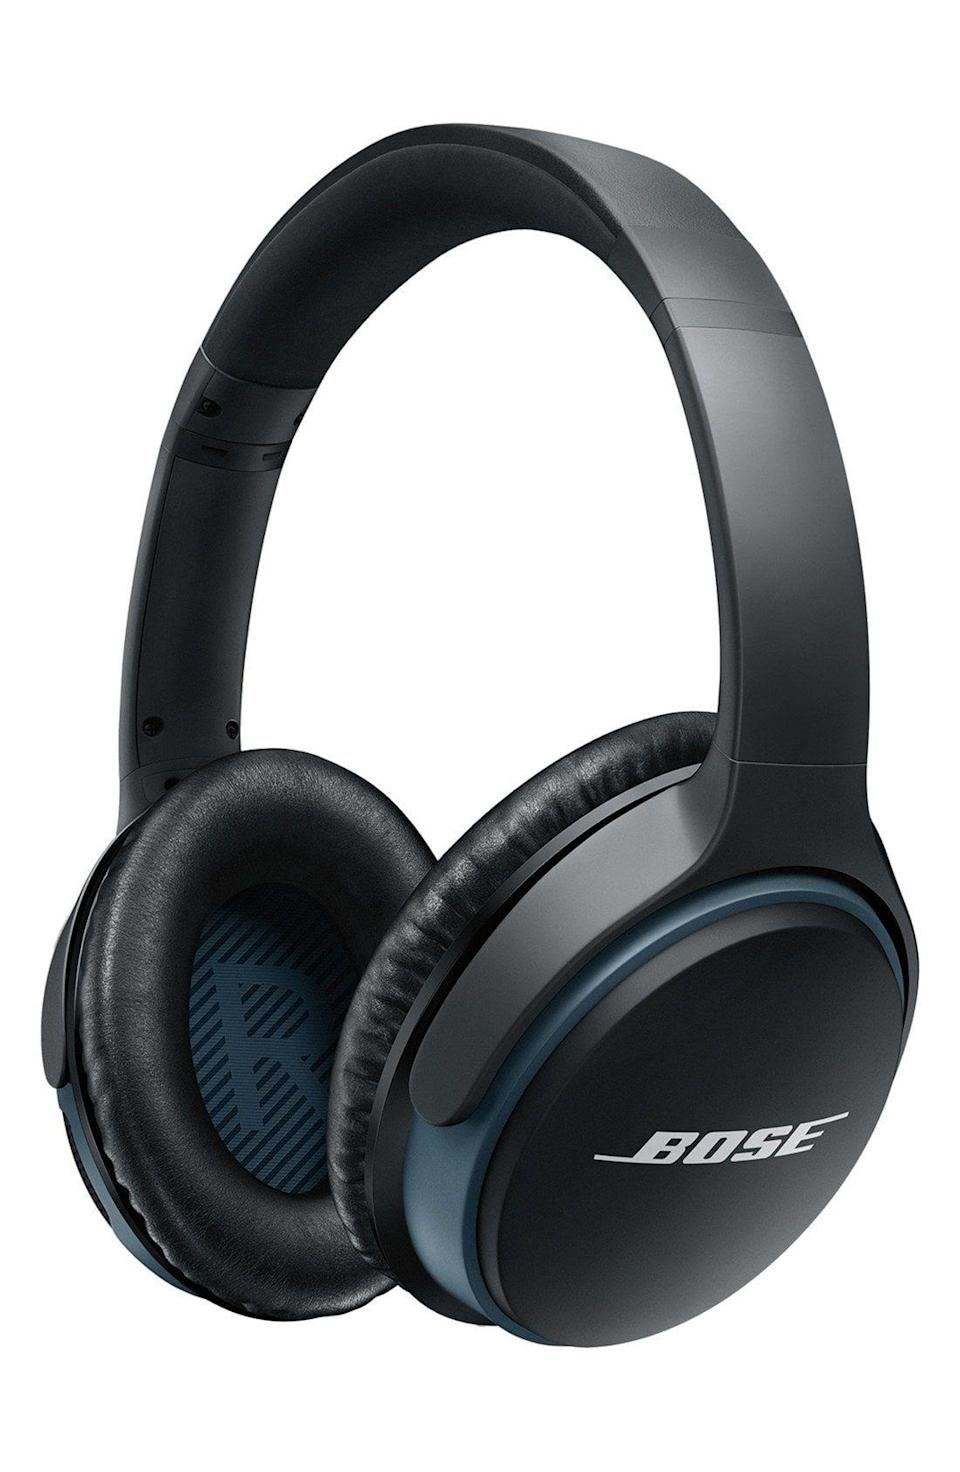 "<p><strong>Bose </strong></p><p>nordstrom.com</p><p><a href=""https://go.redirectingat.com?id=74968X1596630&url=https%3A%2F%2Fshop.nordstrom.com%2Fs%2Fbose-soundlink-around-ear-bluetooth-headphones%2F4164252&sref=https%3A%2F%2Fwww.harpersbazaar.com%2Ffashion%2Ftrends%2Fg4473%2Fmens-holiday-gift-guide%2F"" rel=""nofollow noopener"" target=""_blank"" data-ylk=""slk:Shop Now"" class=""link rapid-noclick-resp"">Shop Now</a></p><p>A pair of new wireless headphones always makes for the perfect gift.</p>"